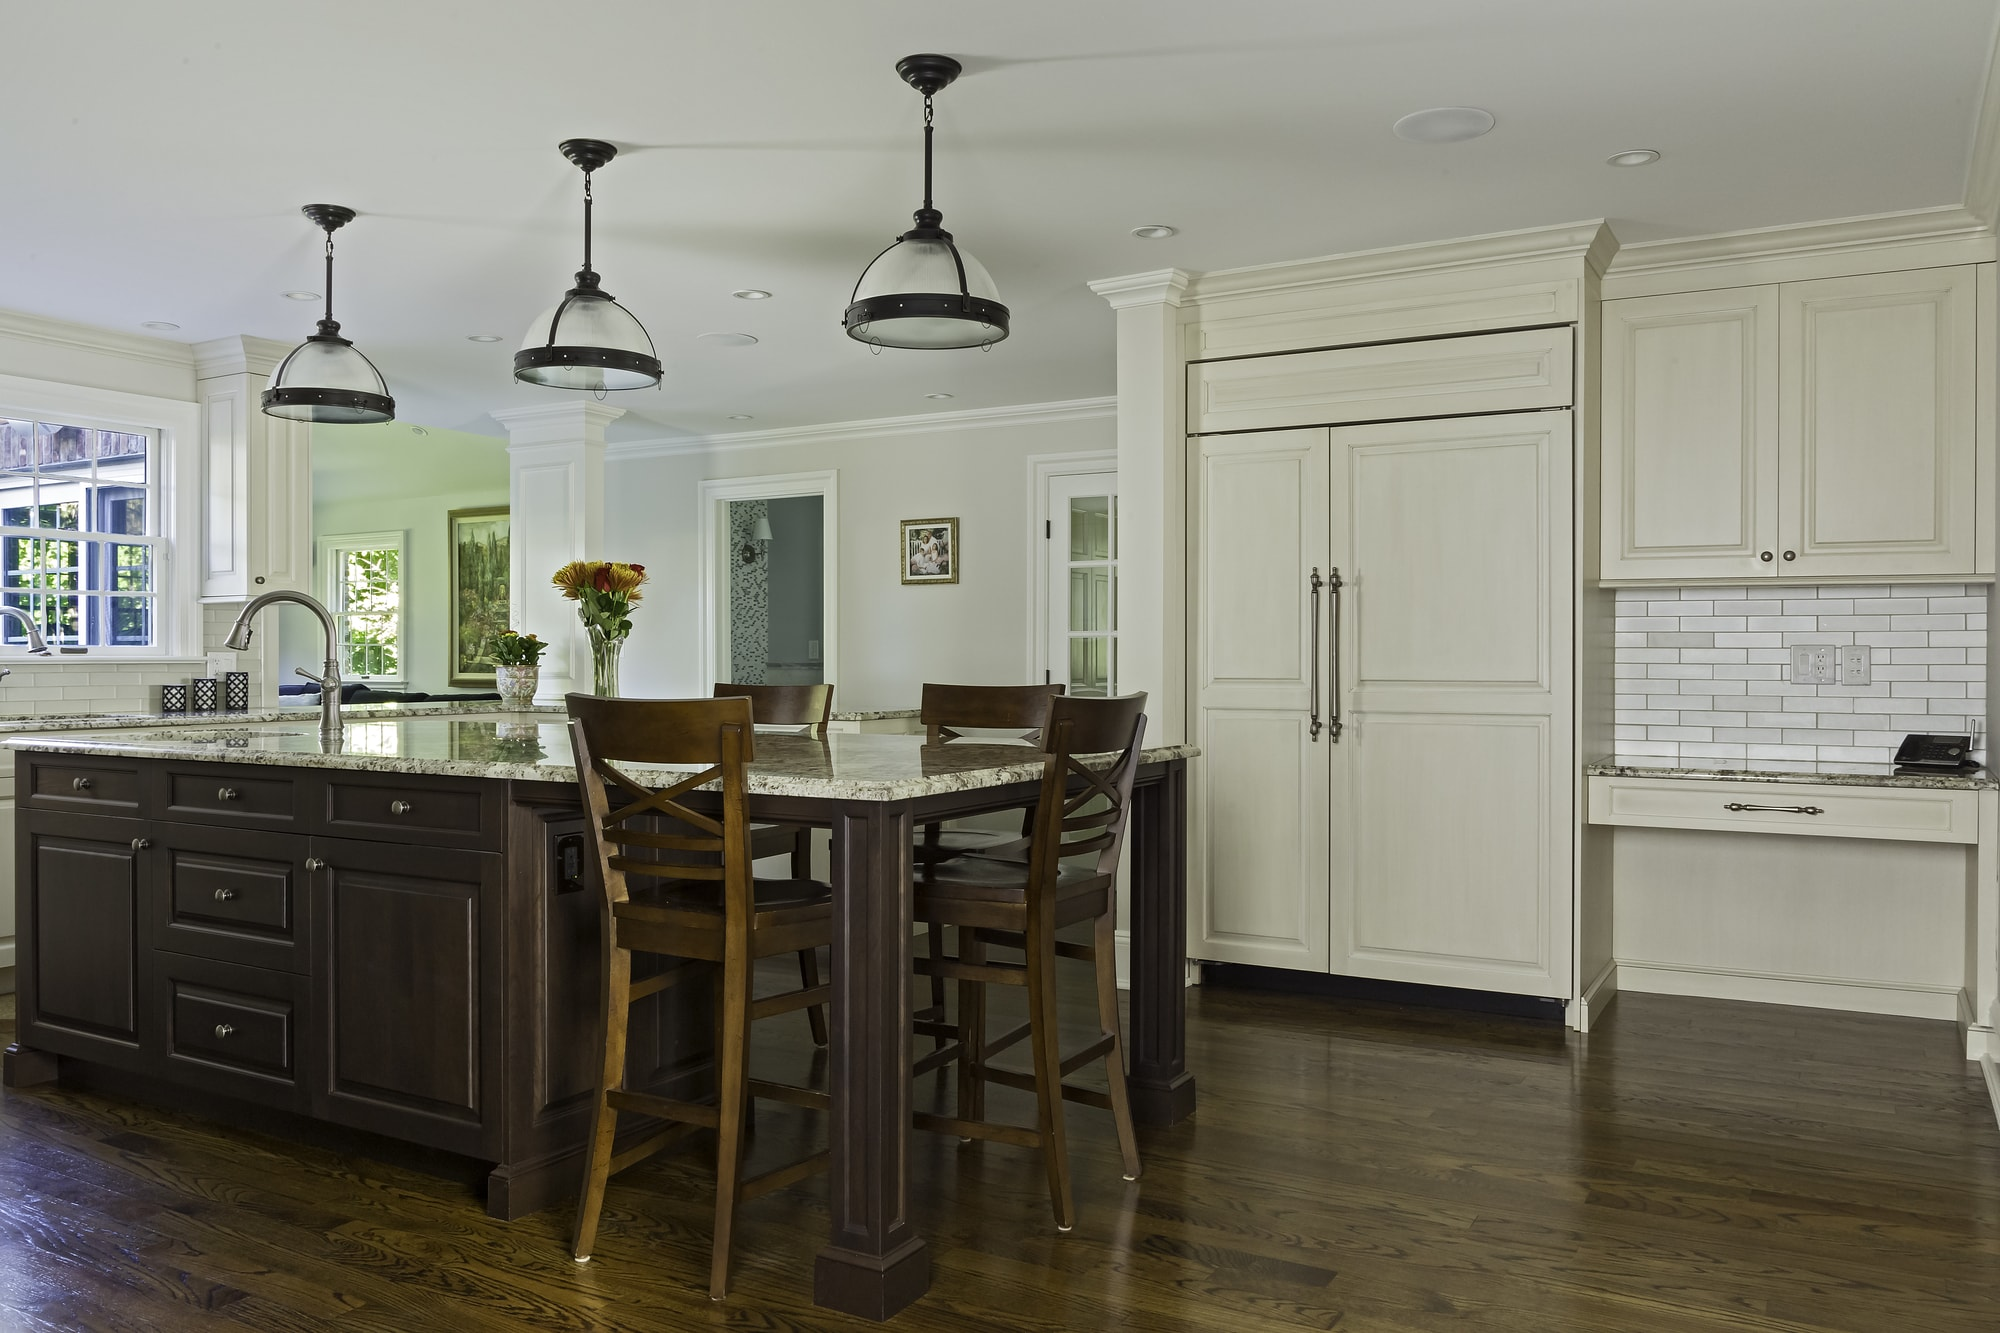 Traditional style kitchen with extended island counter